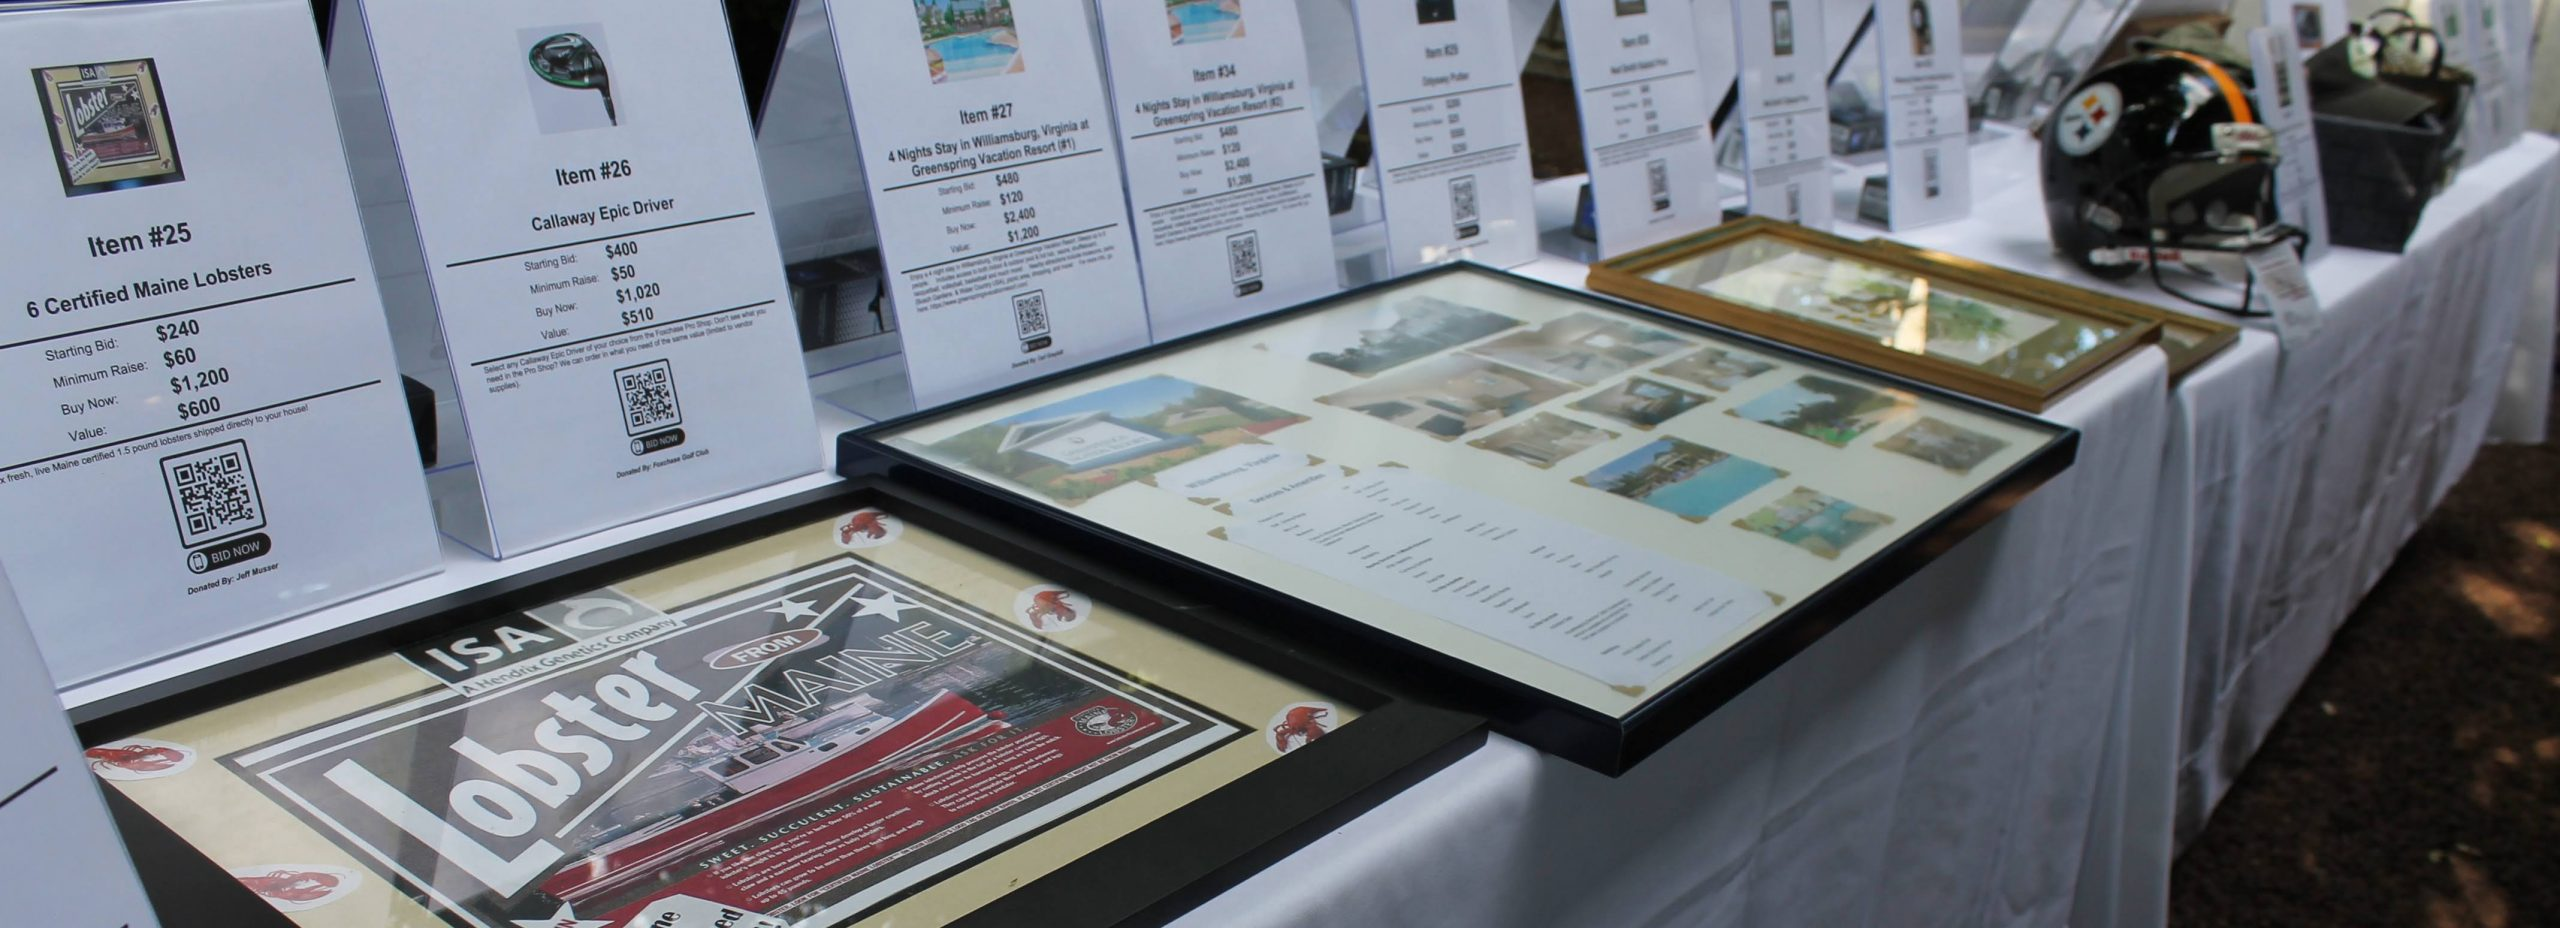 2021 Golf Classic Auction Table